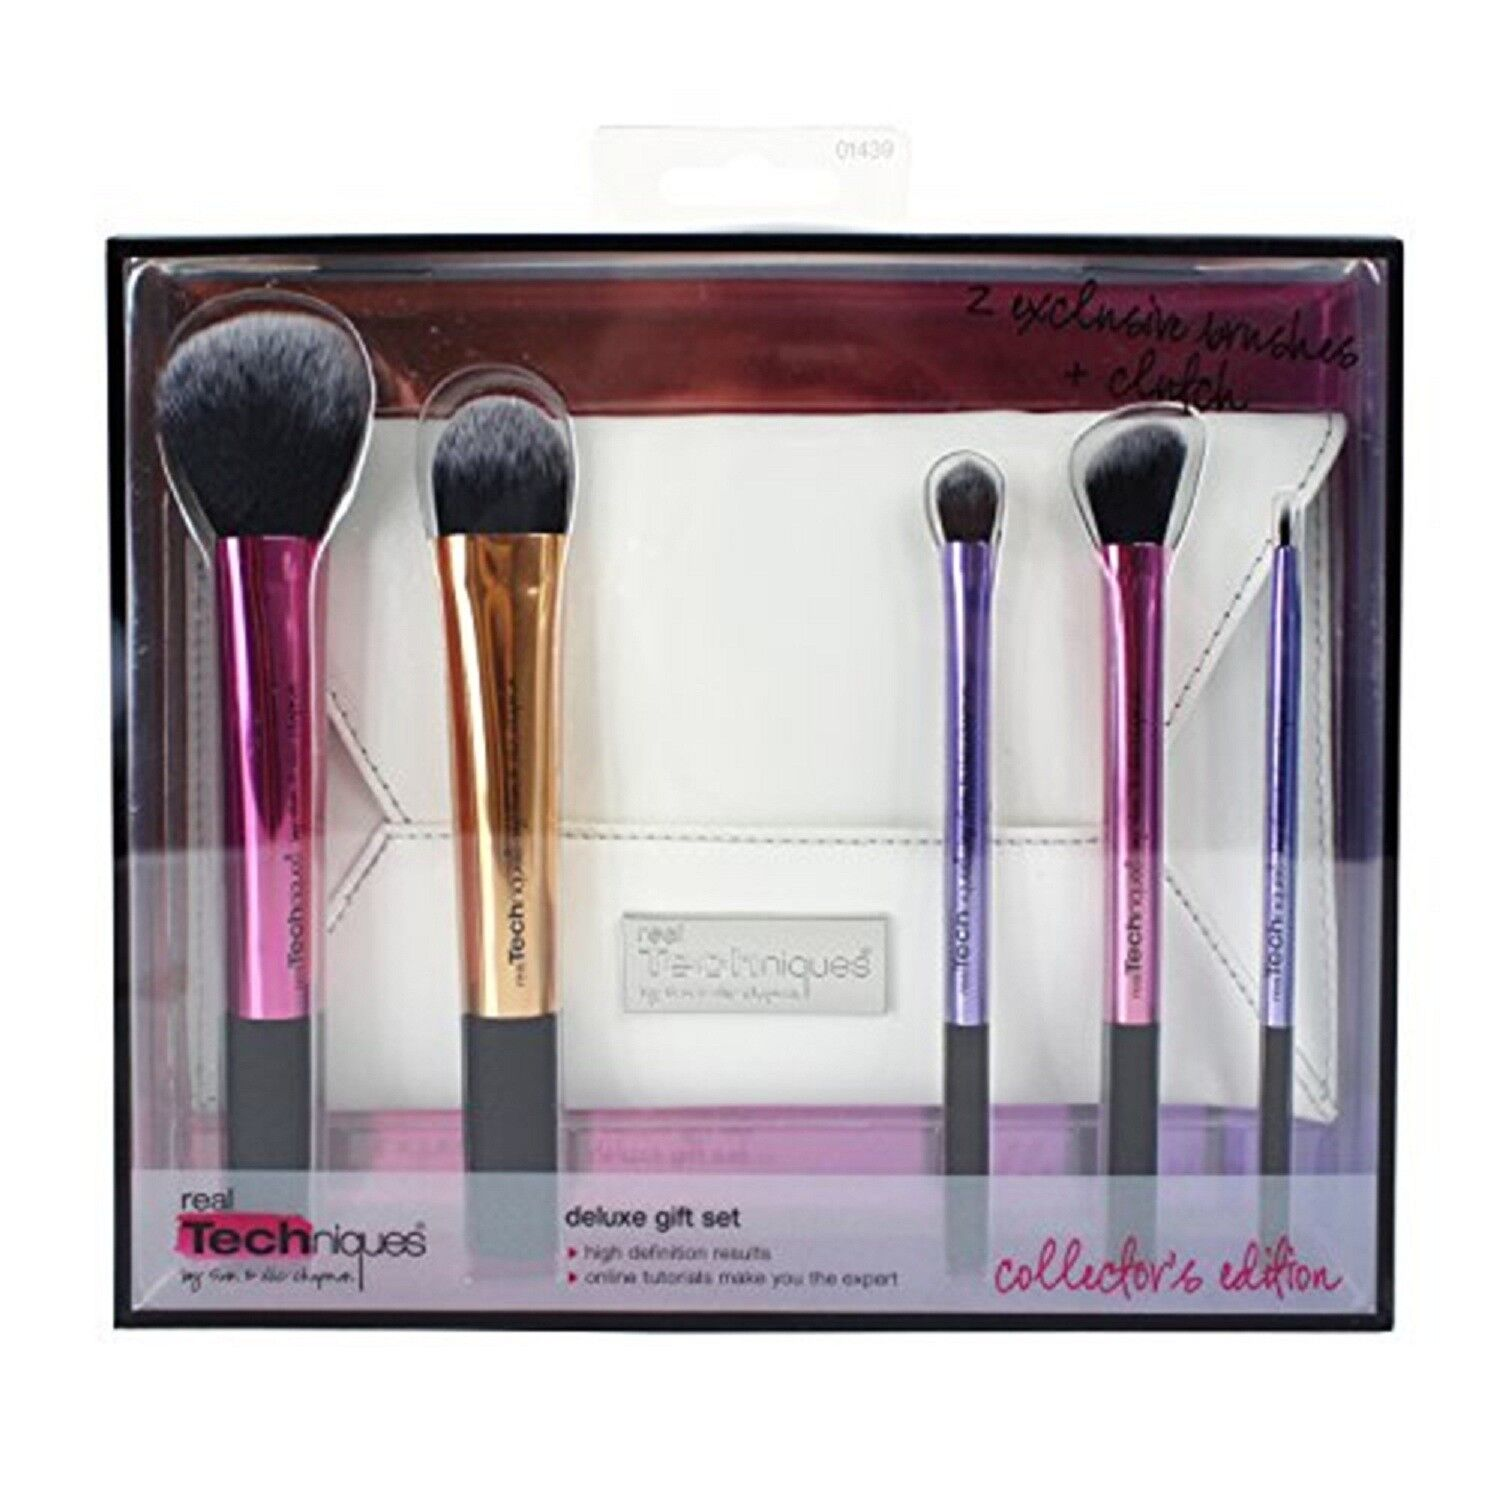 USA SHIP Cosmetic Makeup Brushes Sets For Lush Aesthetica Sh